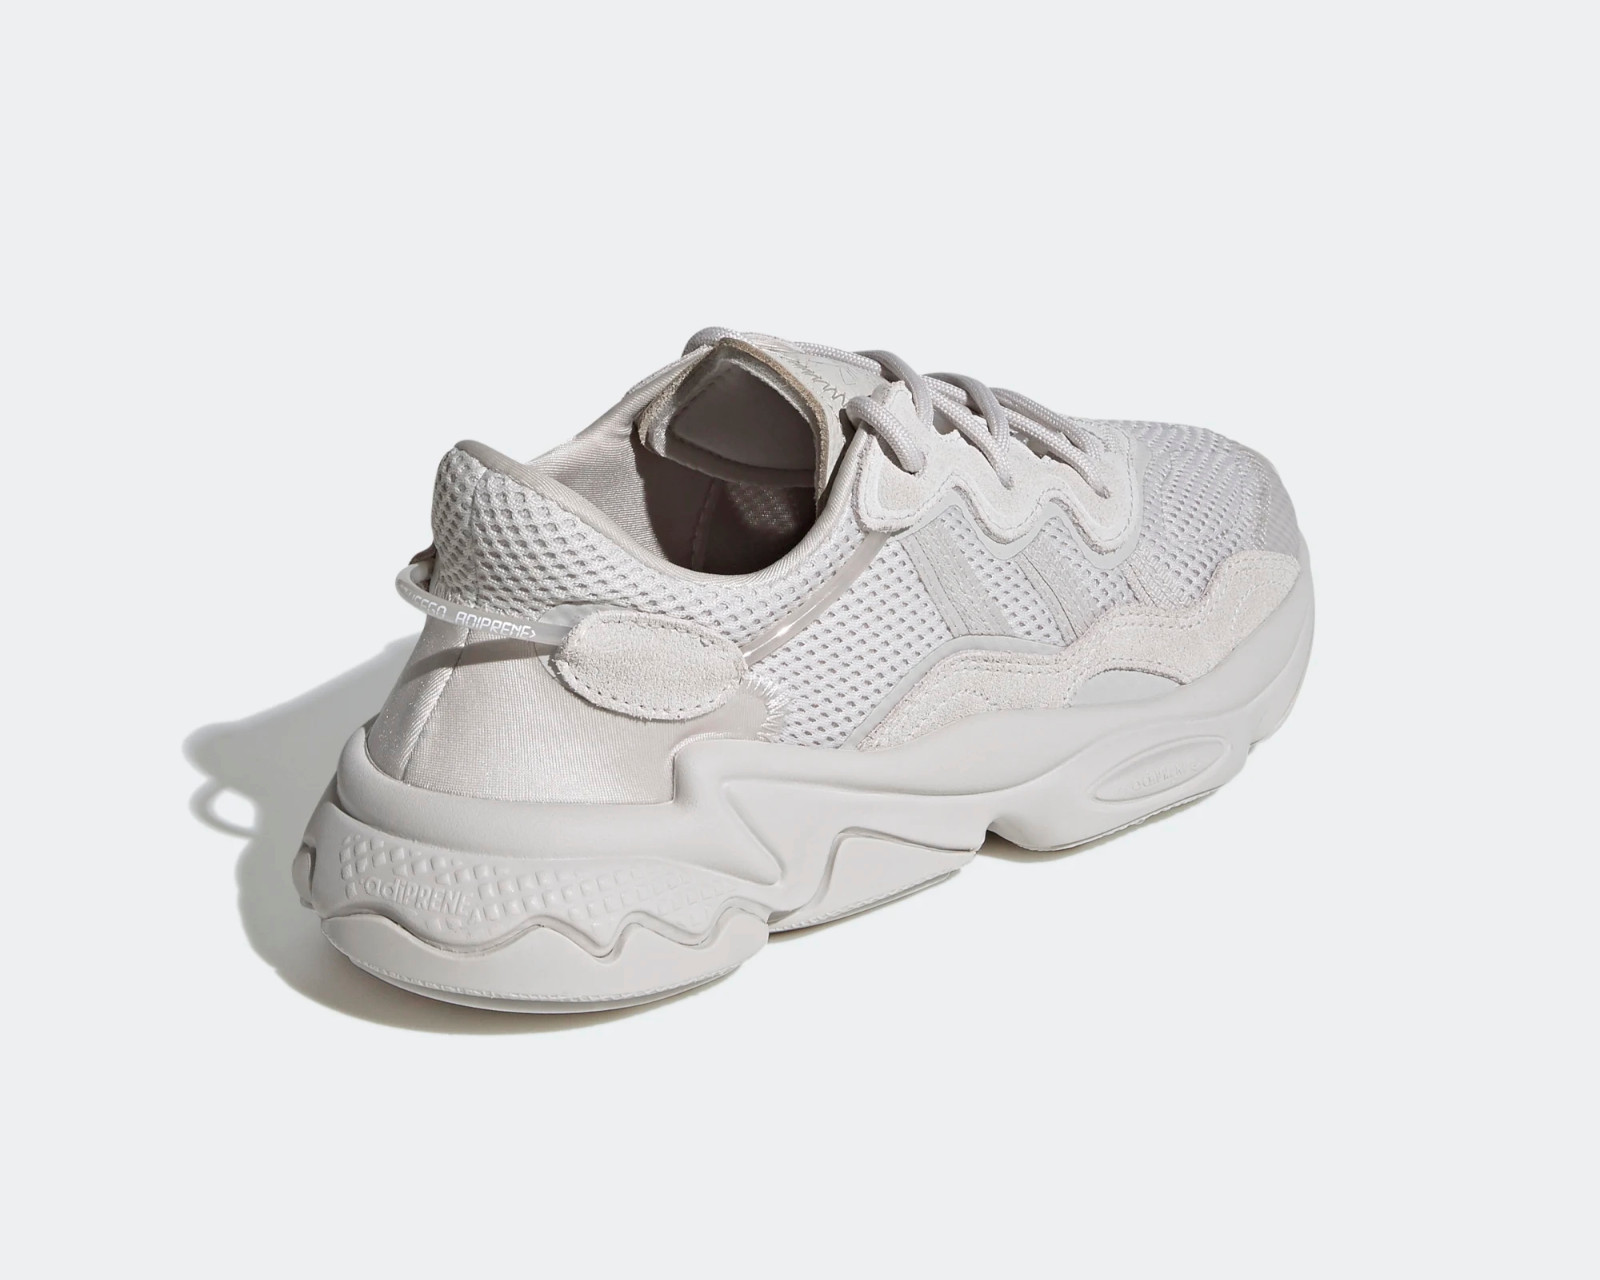 Adidas Originals Ozweego Chalk Pearl Cloud White Shoes FY2023